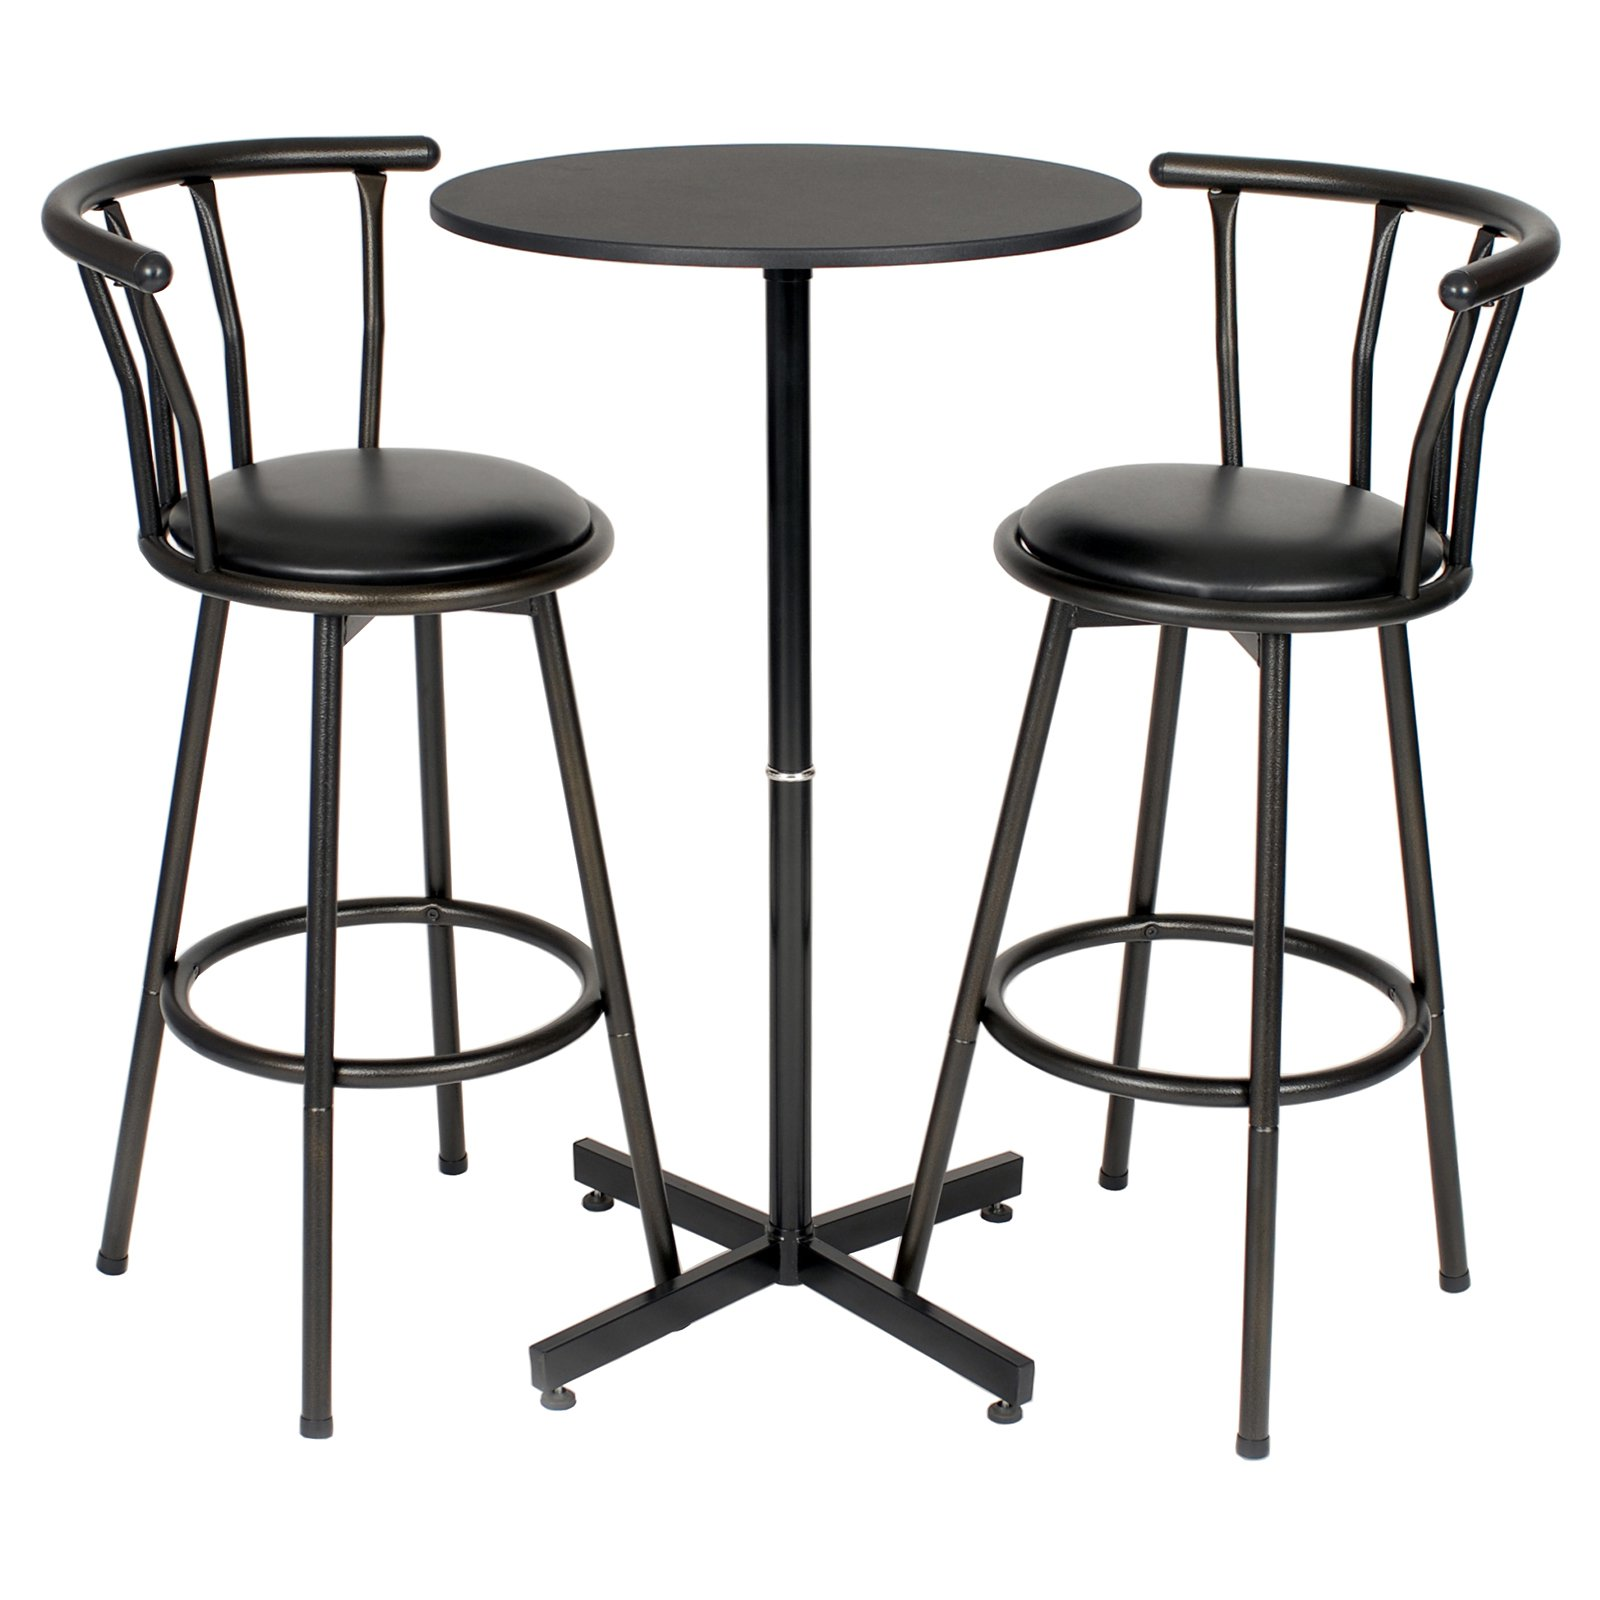 Roundhill Nor Hill 3 Piece Black Metal Height Bar Table Set With 2 Stools,